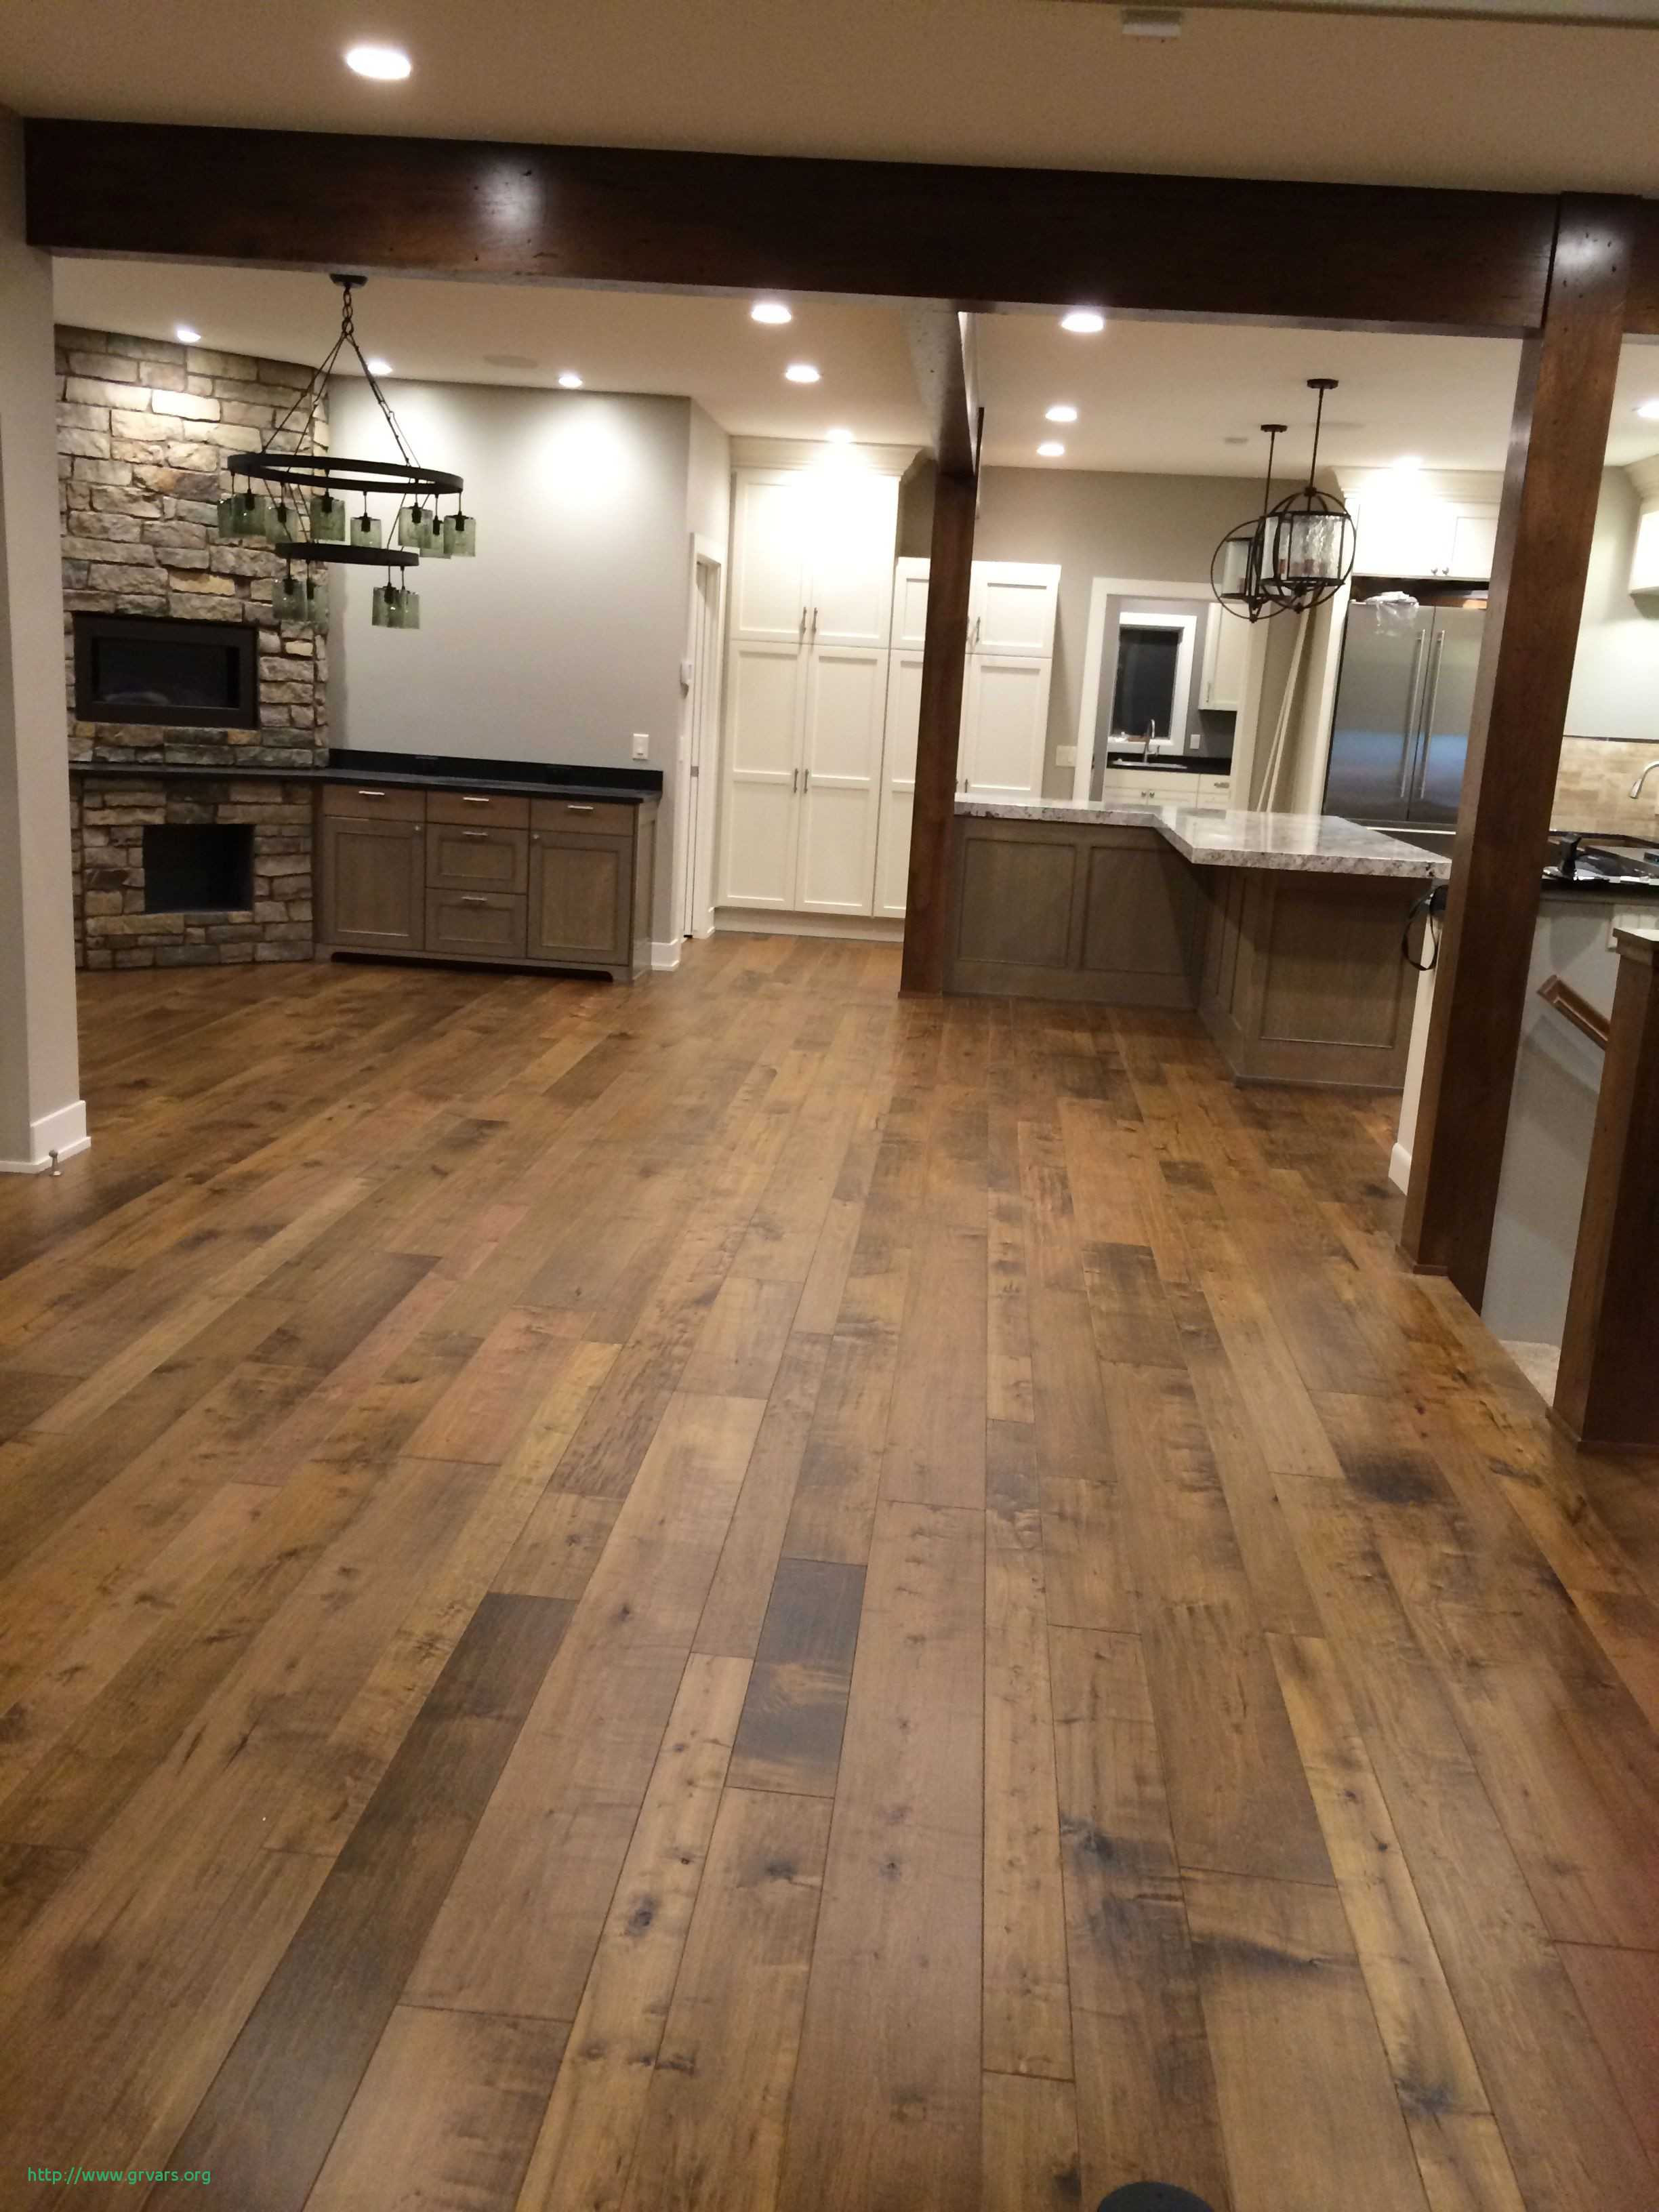 Hardwood Floor Refinishing toronto Reviews Of 22 Luxe Hardwood Floor Refinishing Winston Salem Nc Ideas Blog Pertaining to Hardwood Floor Refinishing Winston Salem Nc Unique Inexpensive Hardwood Flooring Monterey Hardwood Collection Pinterest